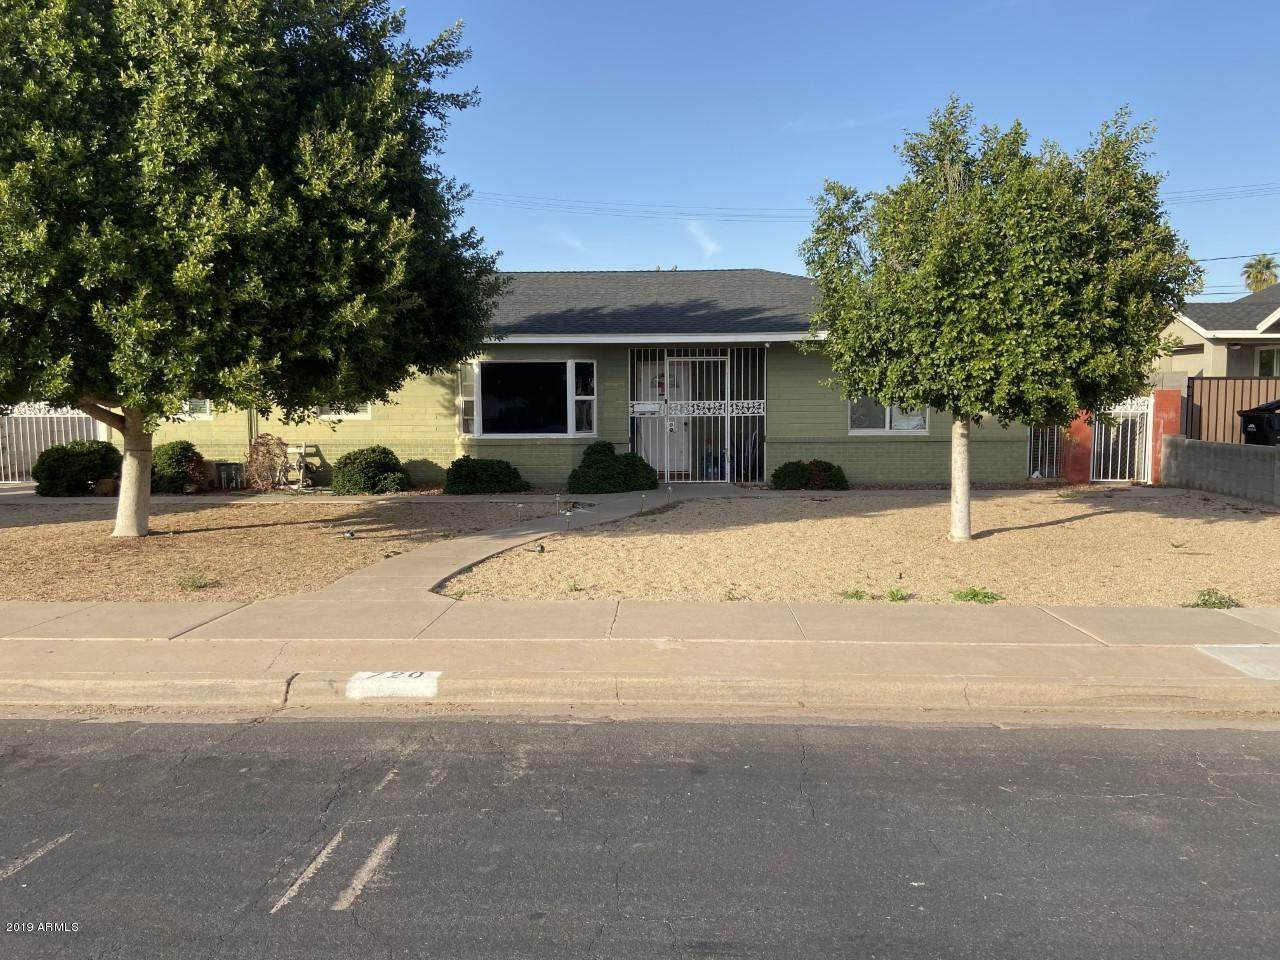 720 Pepper Place - Photo 1